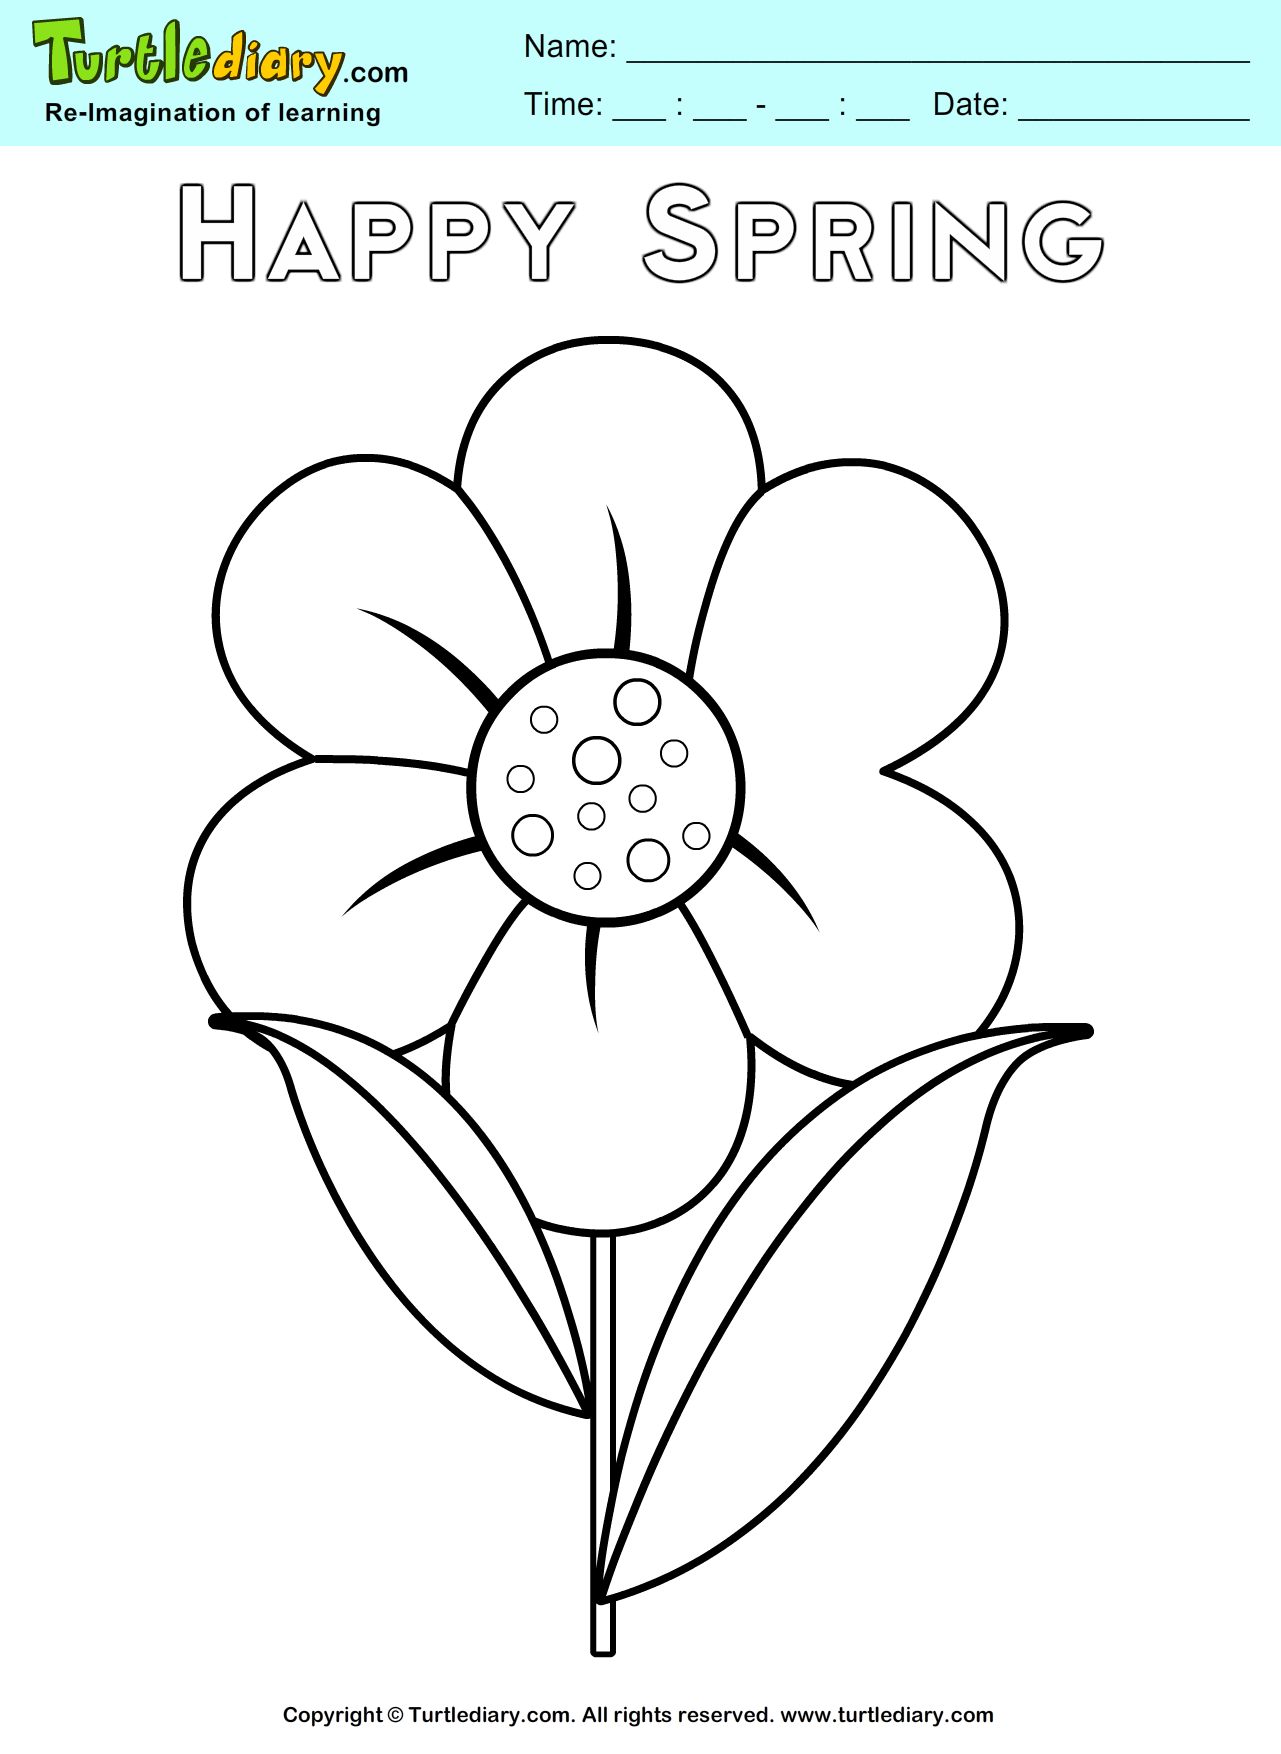 Spring Flower Coloring Sheet Kids Crafts Coloring Turtlediary